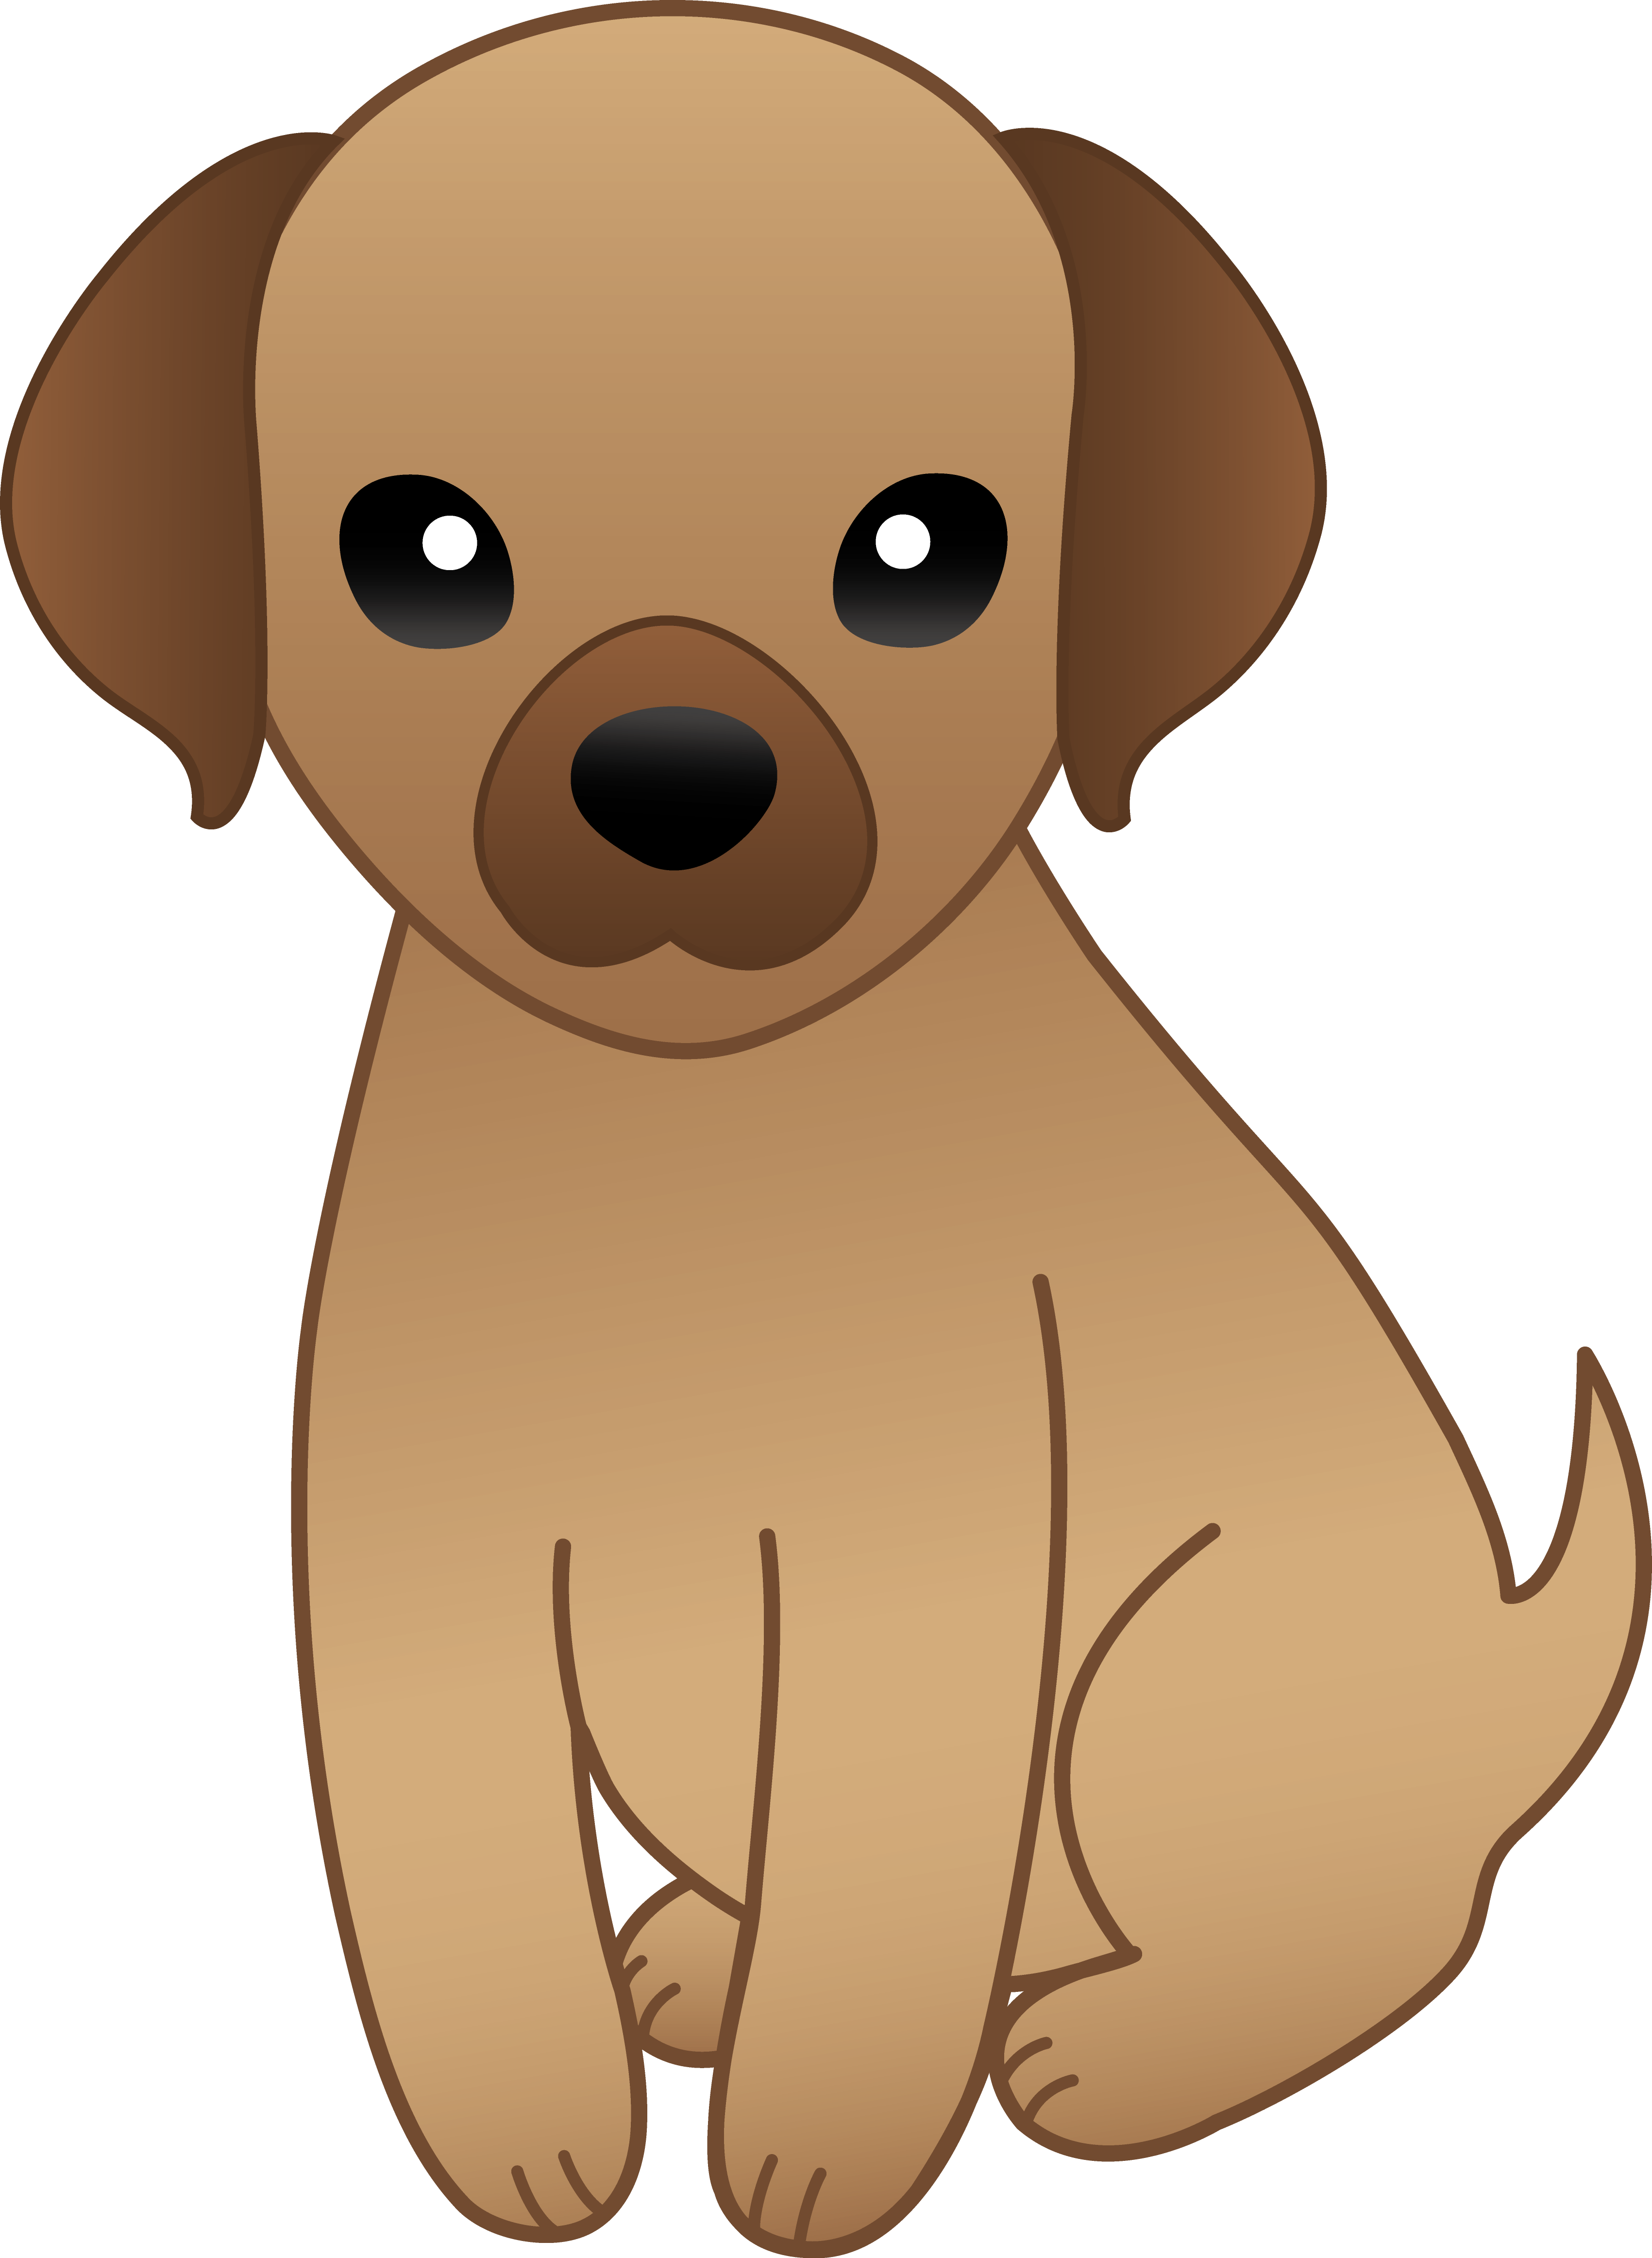 Free Hd Anime Clipart - Animated Dog PNG HD